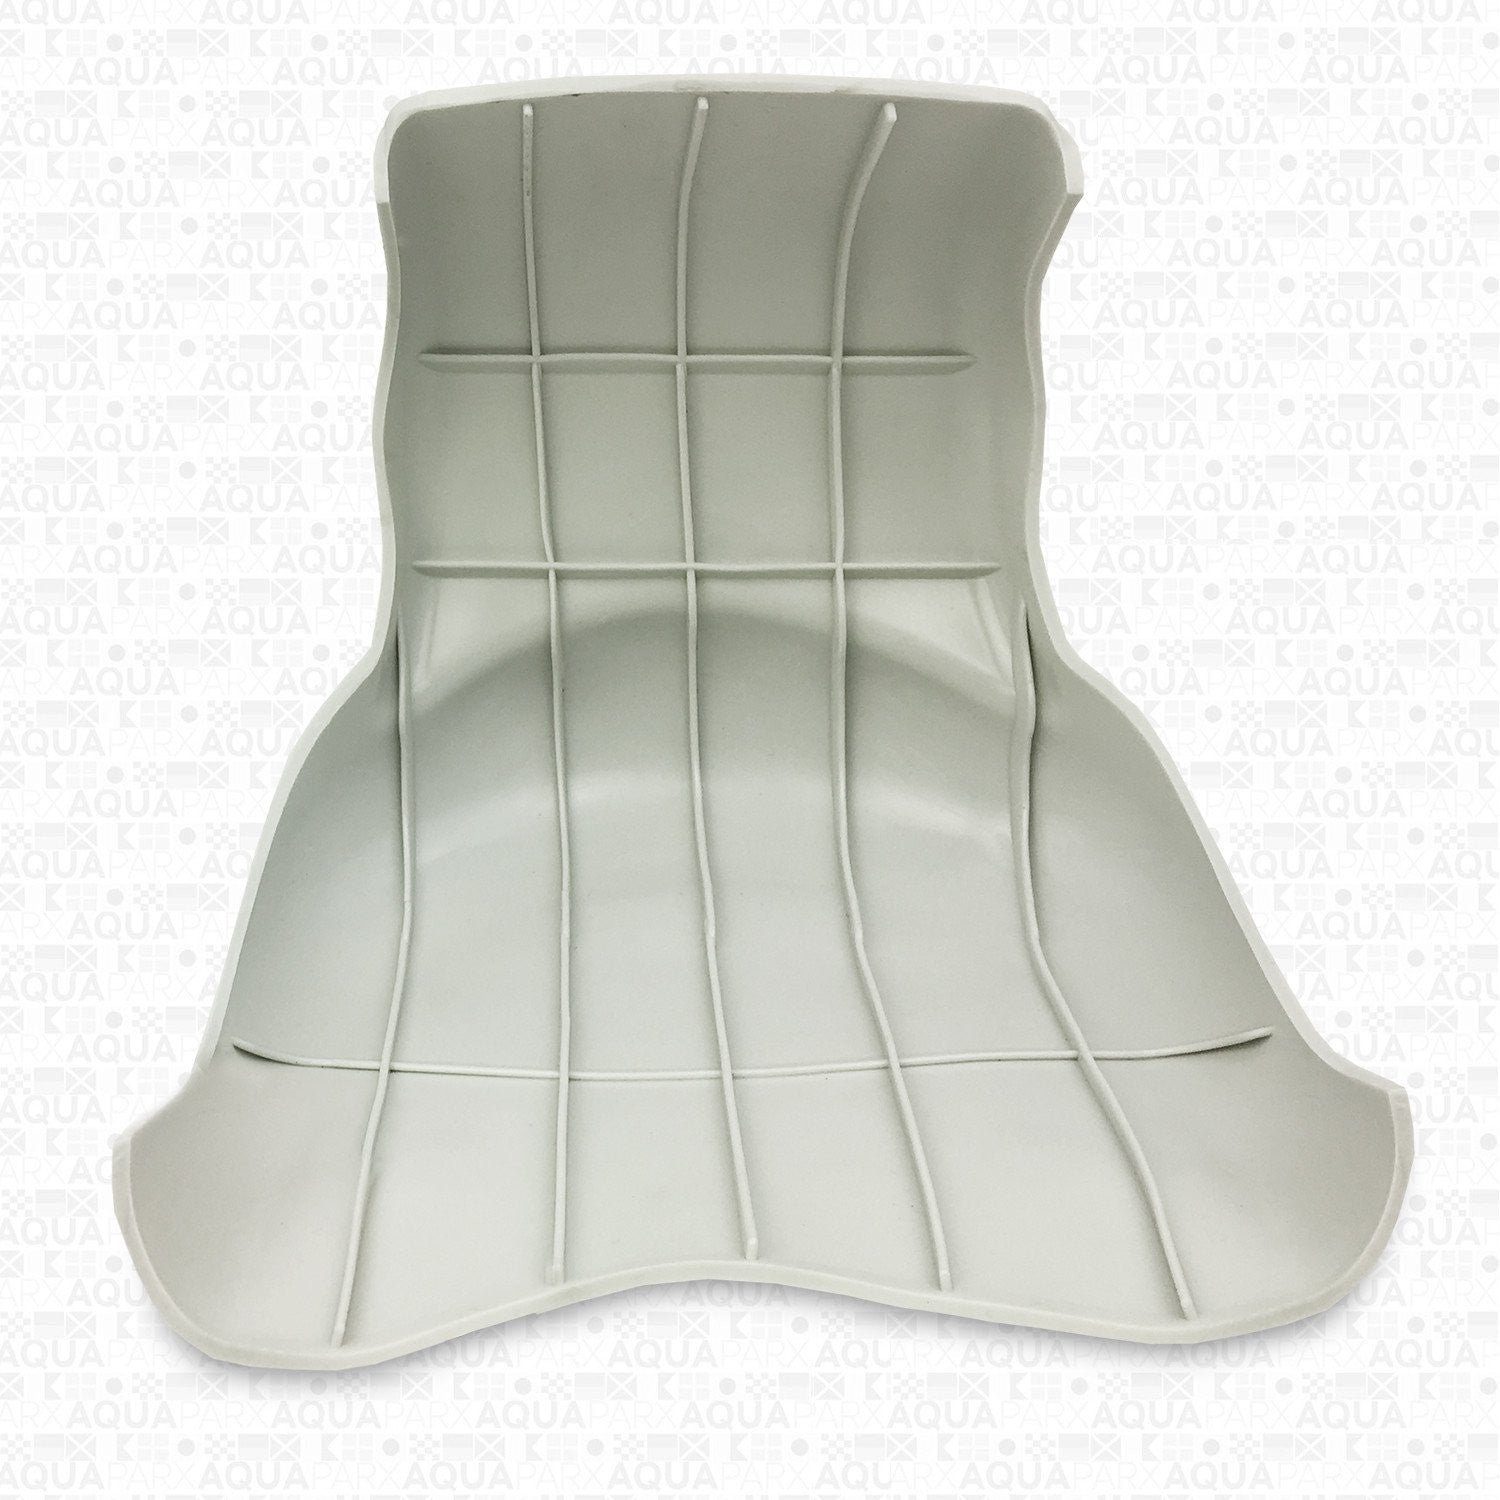 Comfort head rest for Spa/Jacuzzi